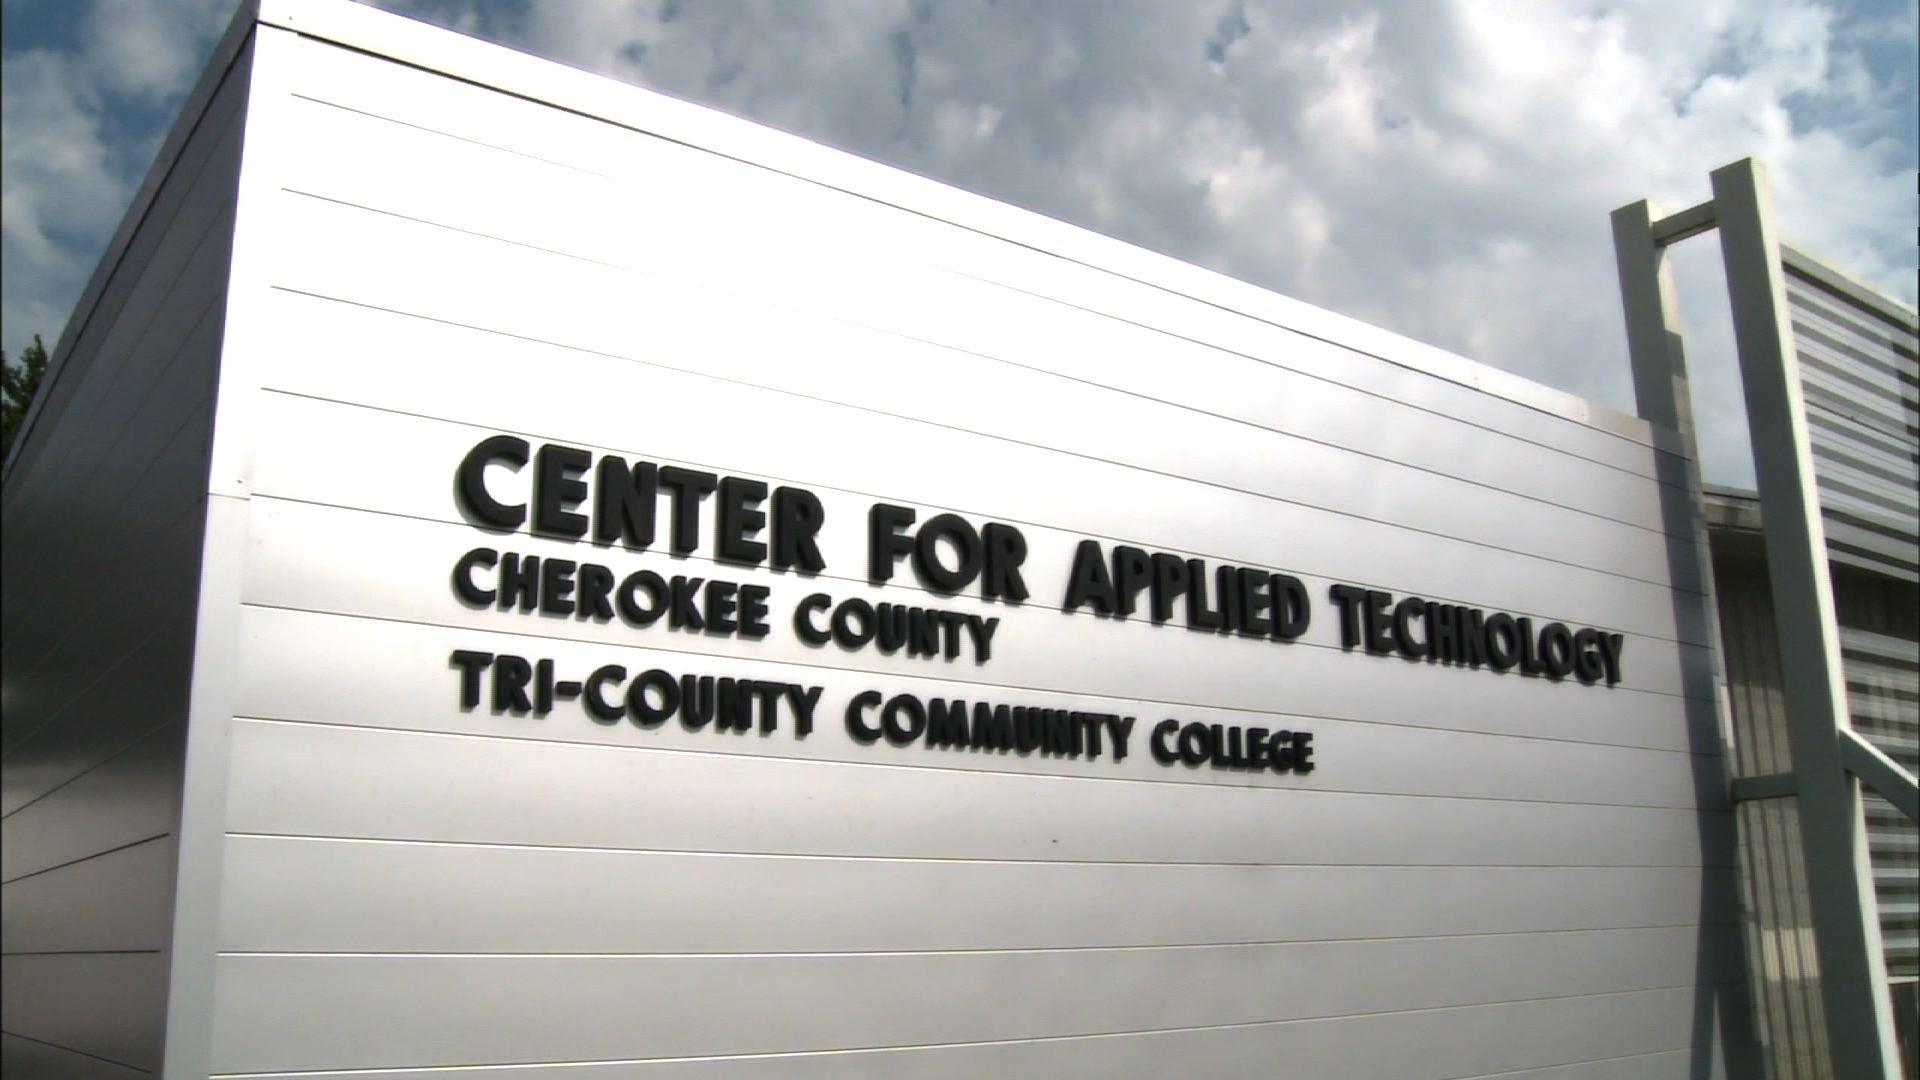 Video Tri County Community College  Watch North Carolina. Dentist Office In Newark Nj Mazda Car Repair. Personalized Email Accounts What Is Carbon. Plain City Animal Hospital Sell My House Now. Instant Car Insurance Quotes Online. Phoenix Car Accident Attorneys. North Carolina Mutual Life Insurance. Instructional Design Certificates. Sailor Jerry Rum Alcohol Percentage